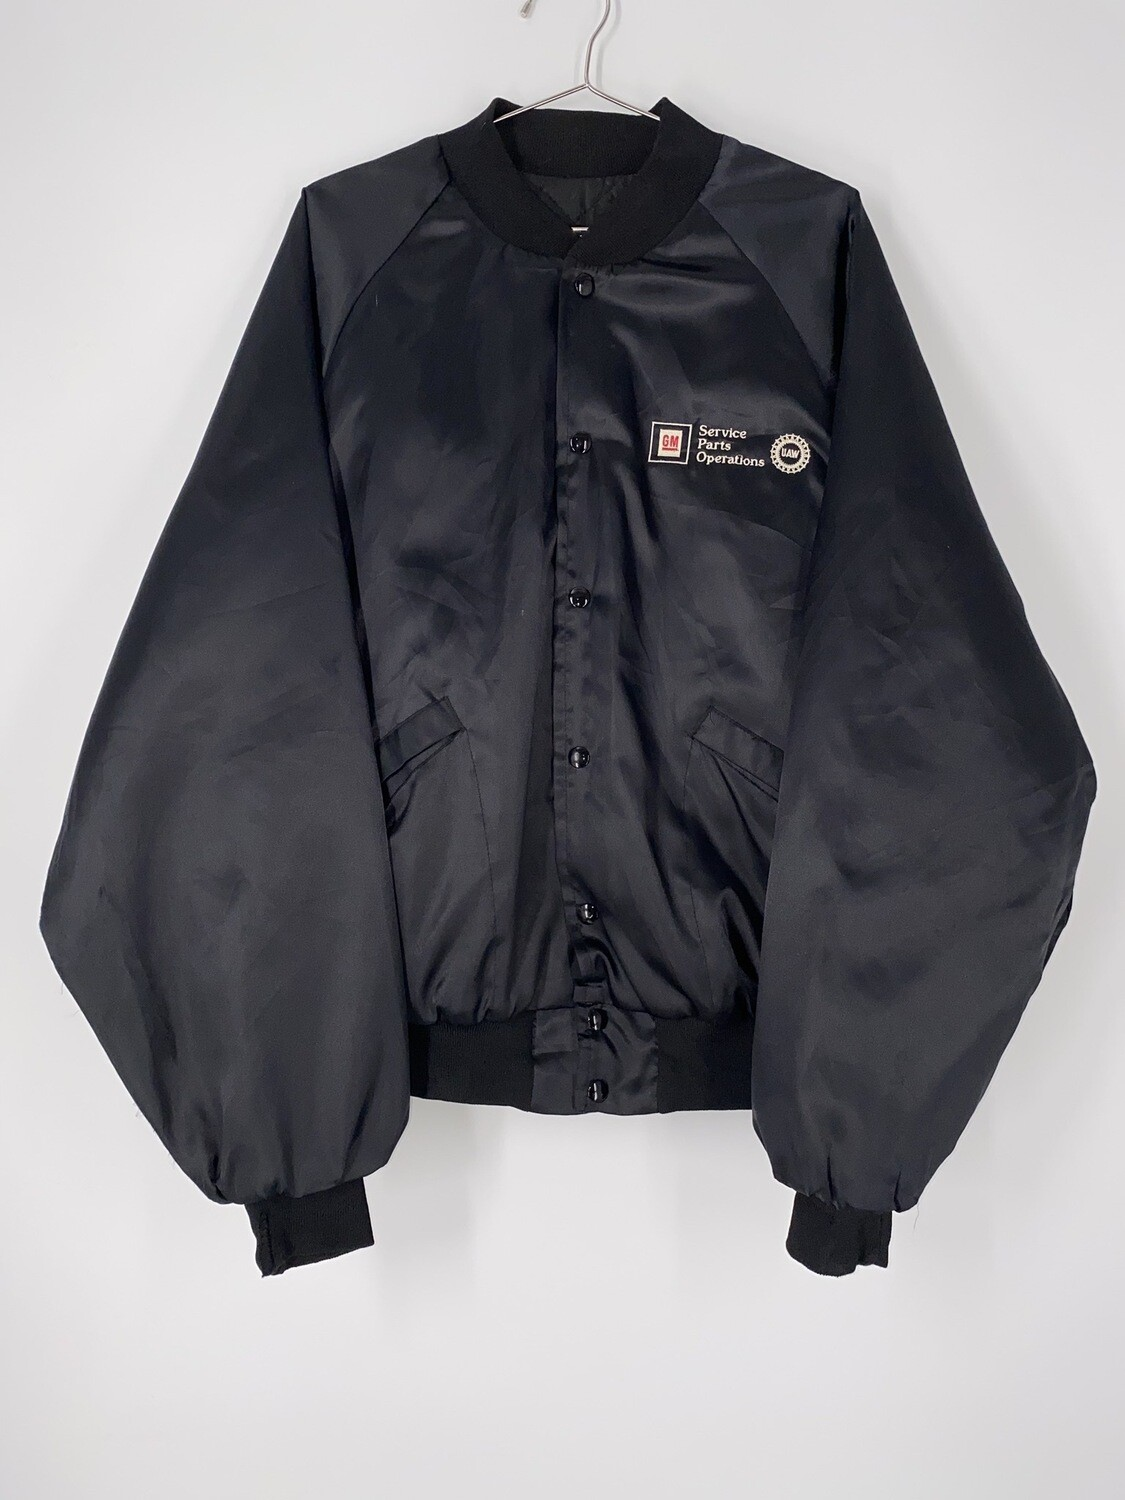 King Louie Pro Fit Service Parts Operations Embroidered Bomber Size L